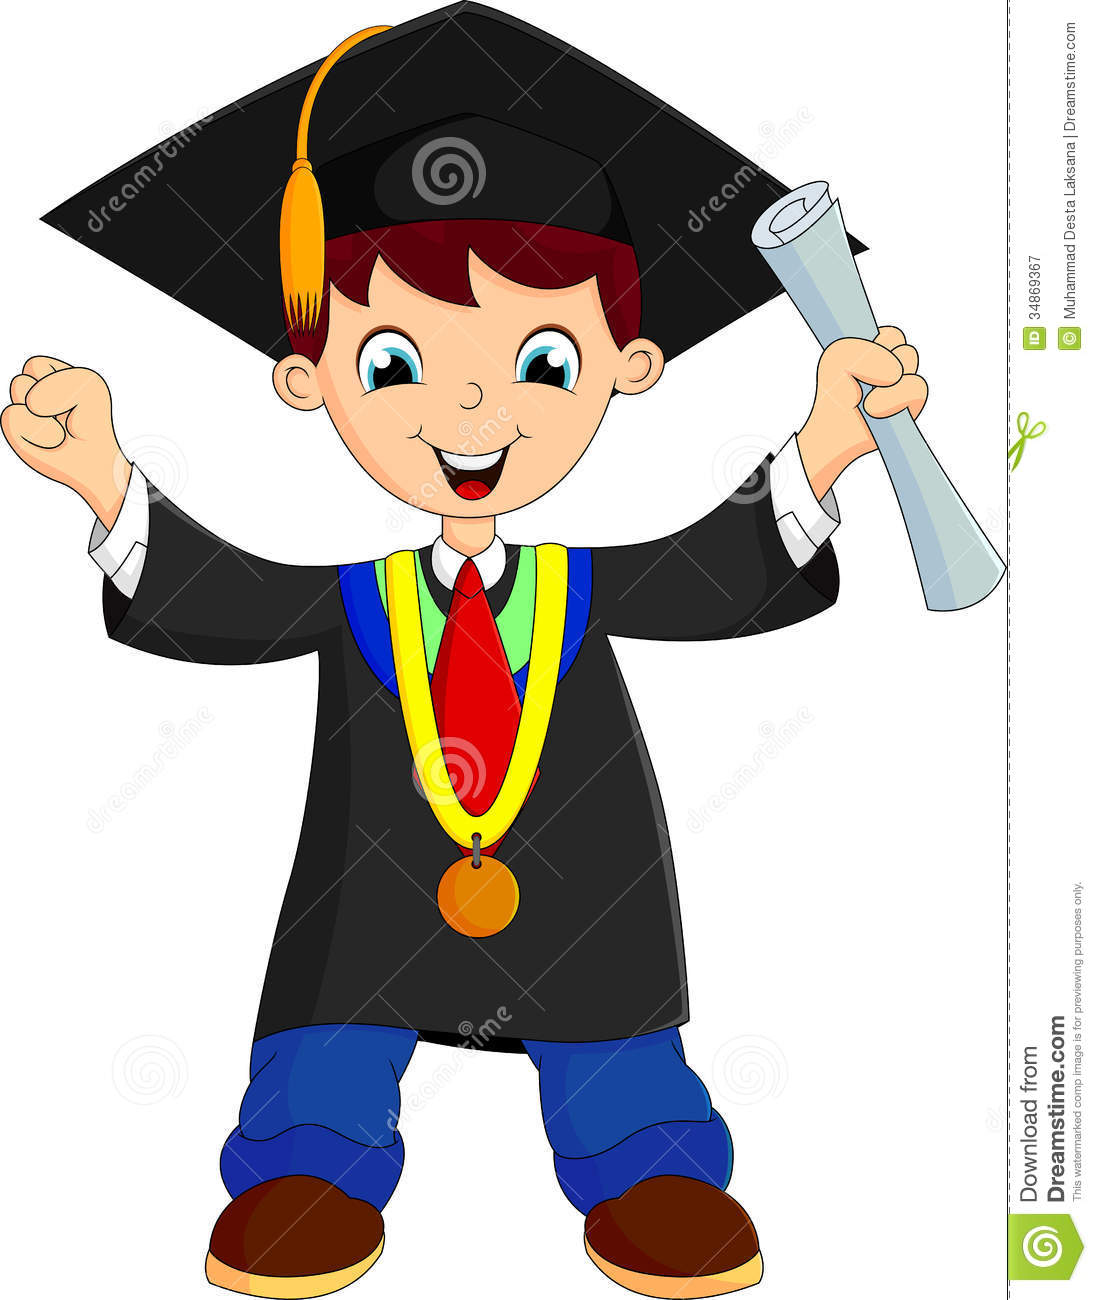 College Cartoon Clipart - Clipart Kid